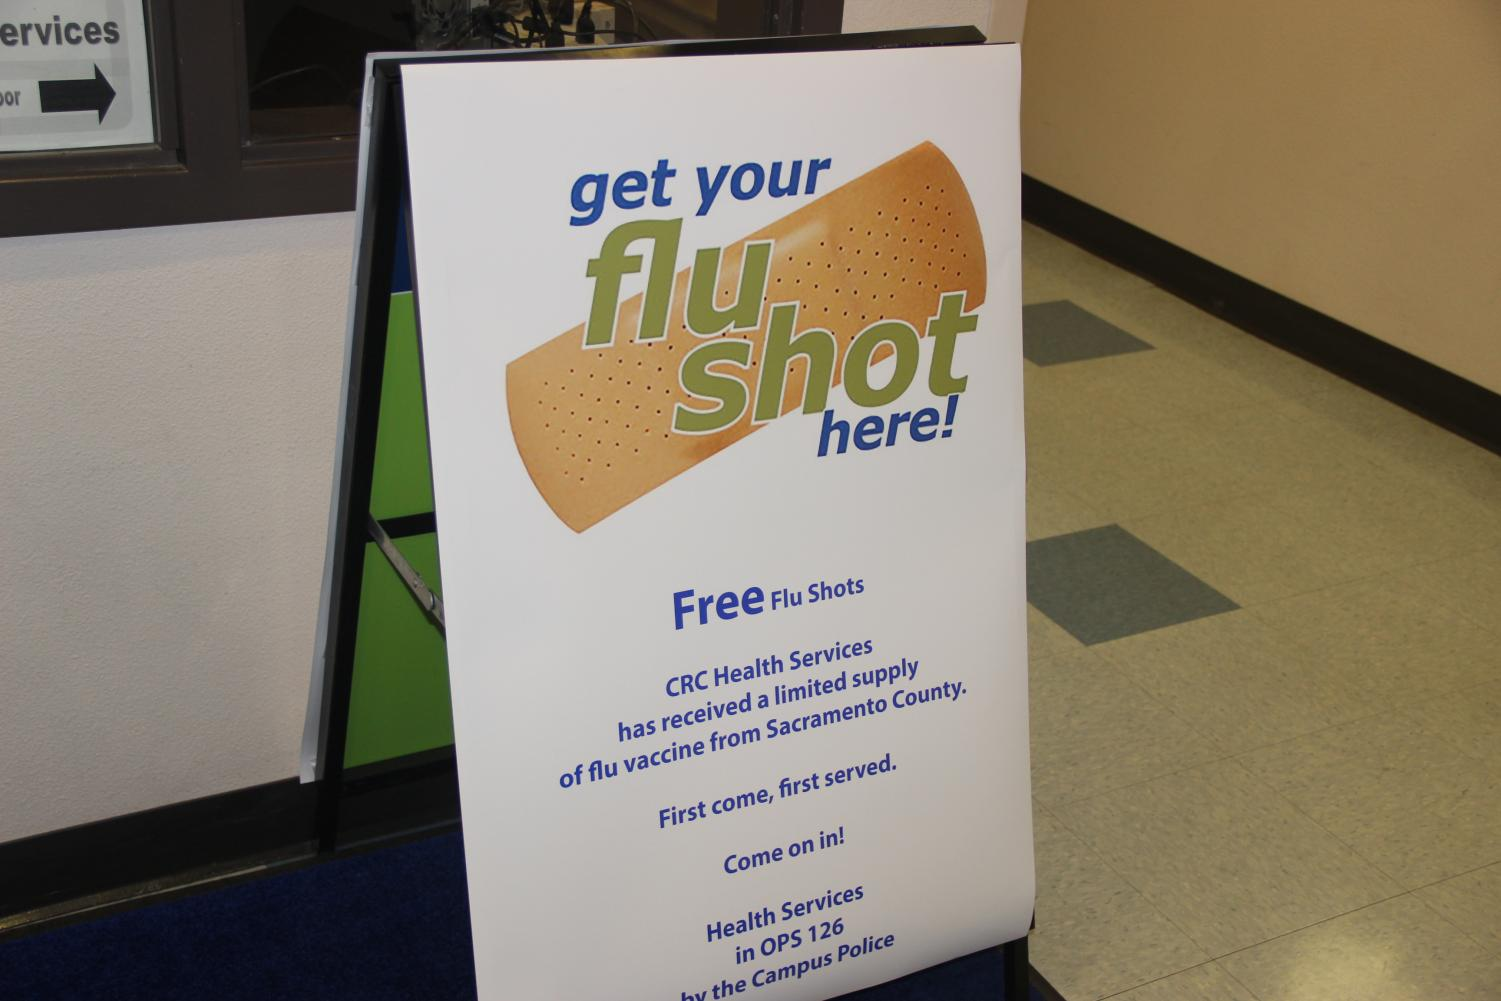 For a limited time, CRC Health Services is offering free flu shots in OPS 126. Flu season accounts up to 49 million deaths year.